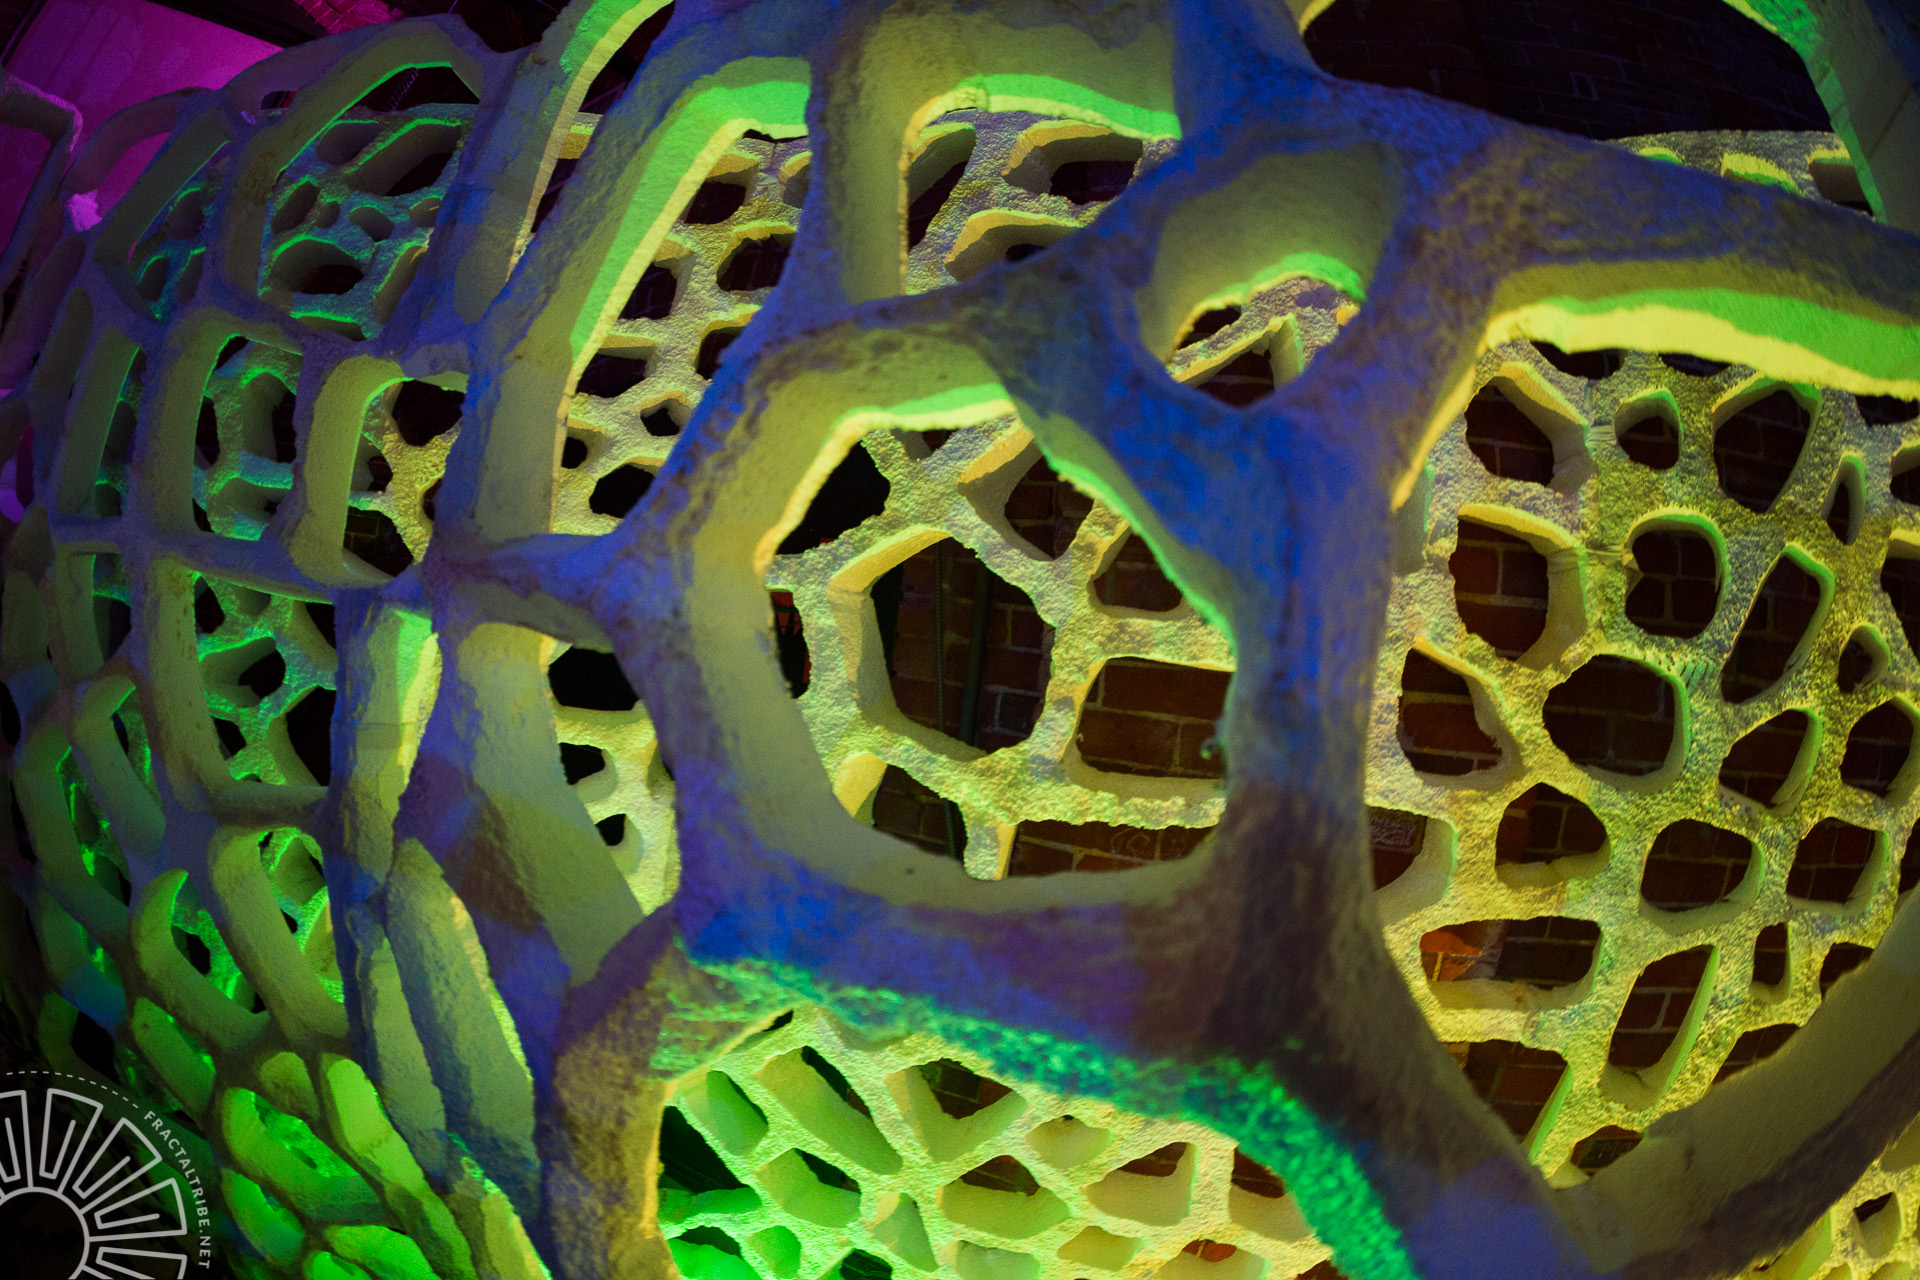 Fungus Web @ Fractaltribe presents Year of the Fractilian 2014